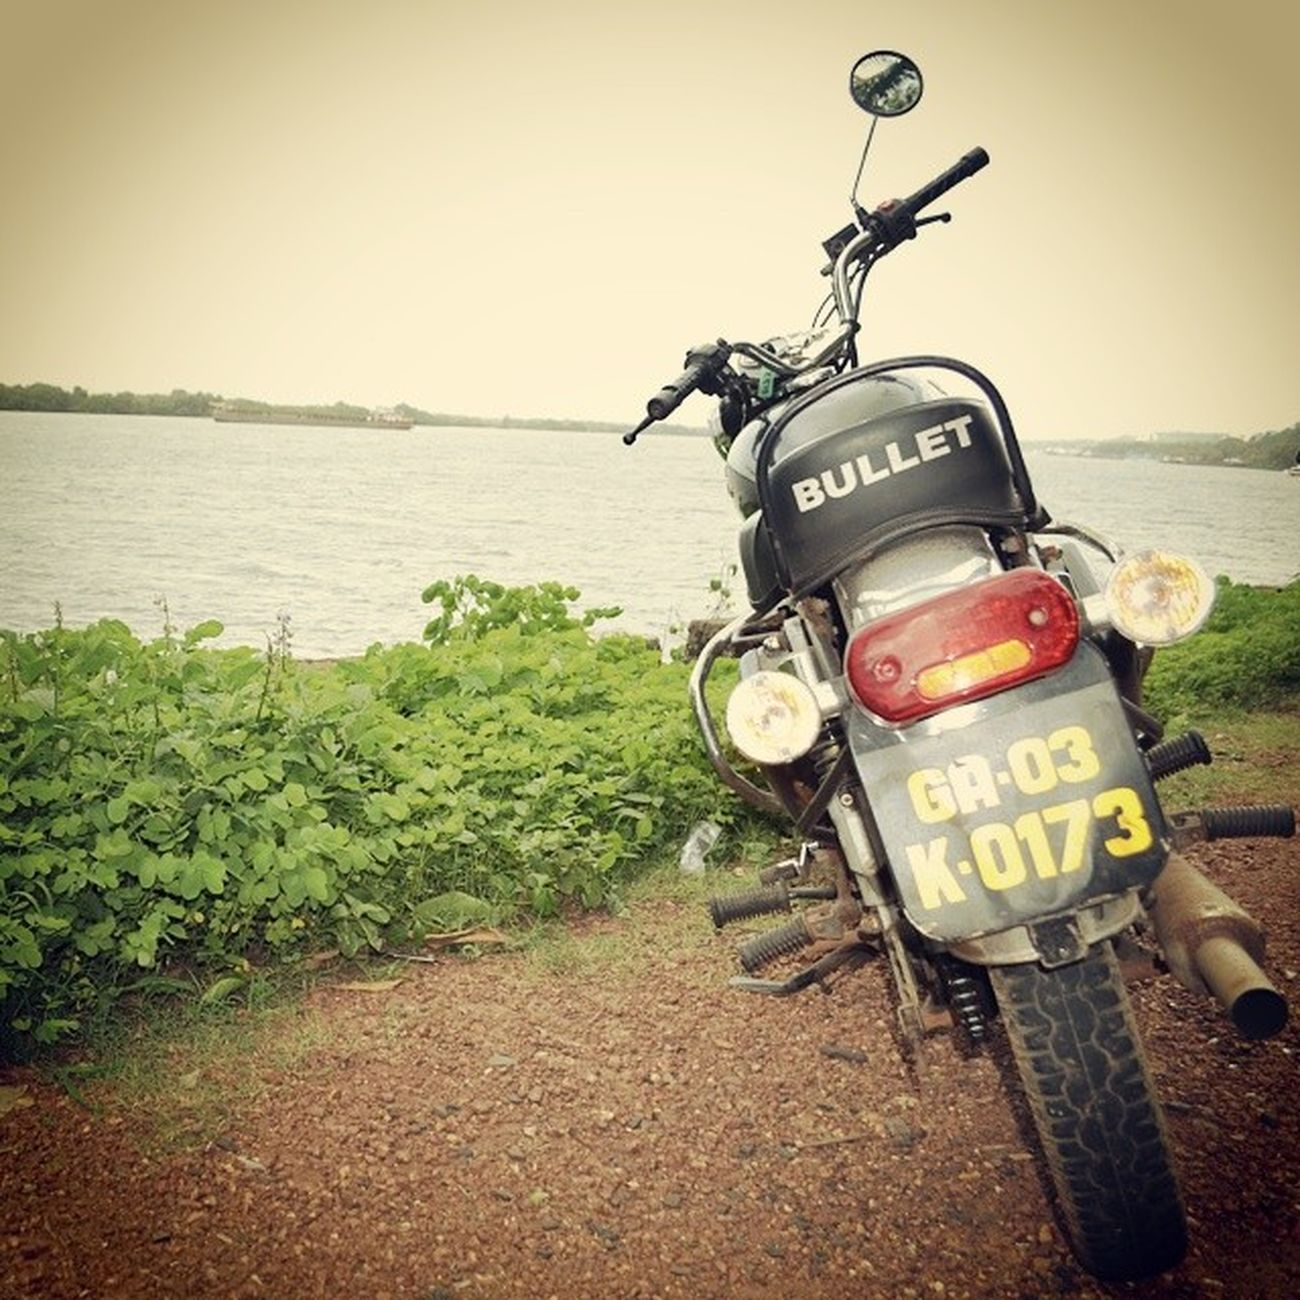 Goa Royalenfield Bullet DugDug